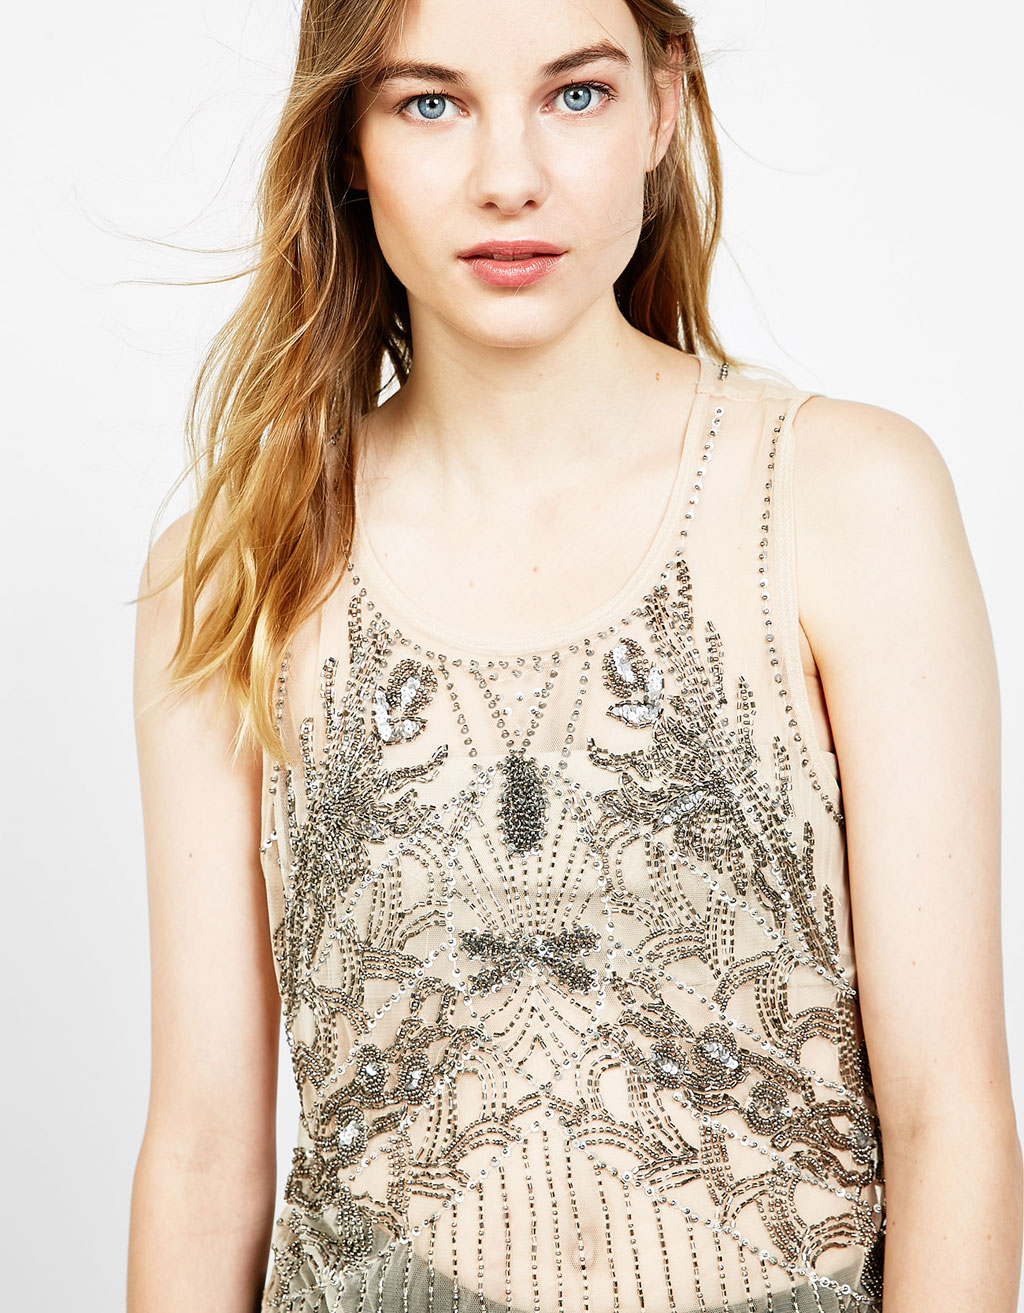 Embroidered tulle top with beads and sequins